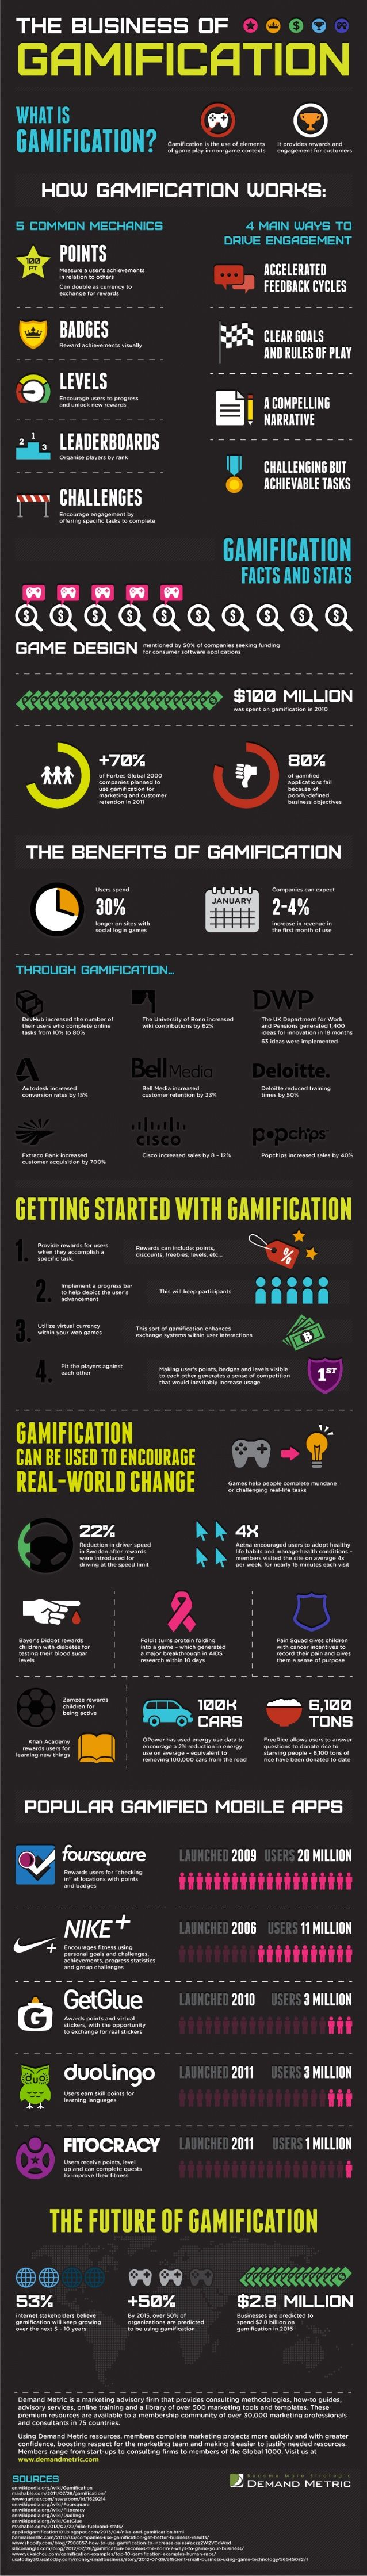 The Business of #Gamification - What It Is, The Benefits, and How to Get Started